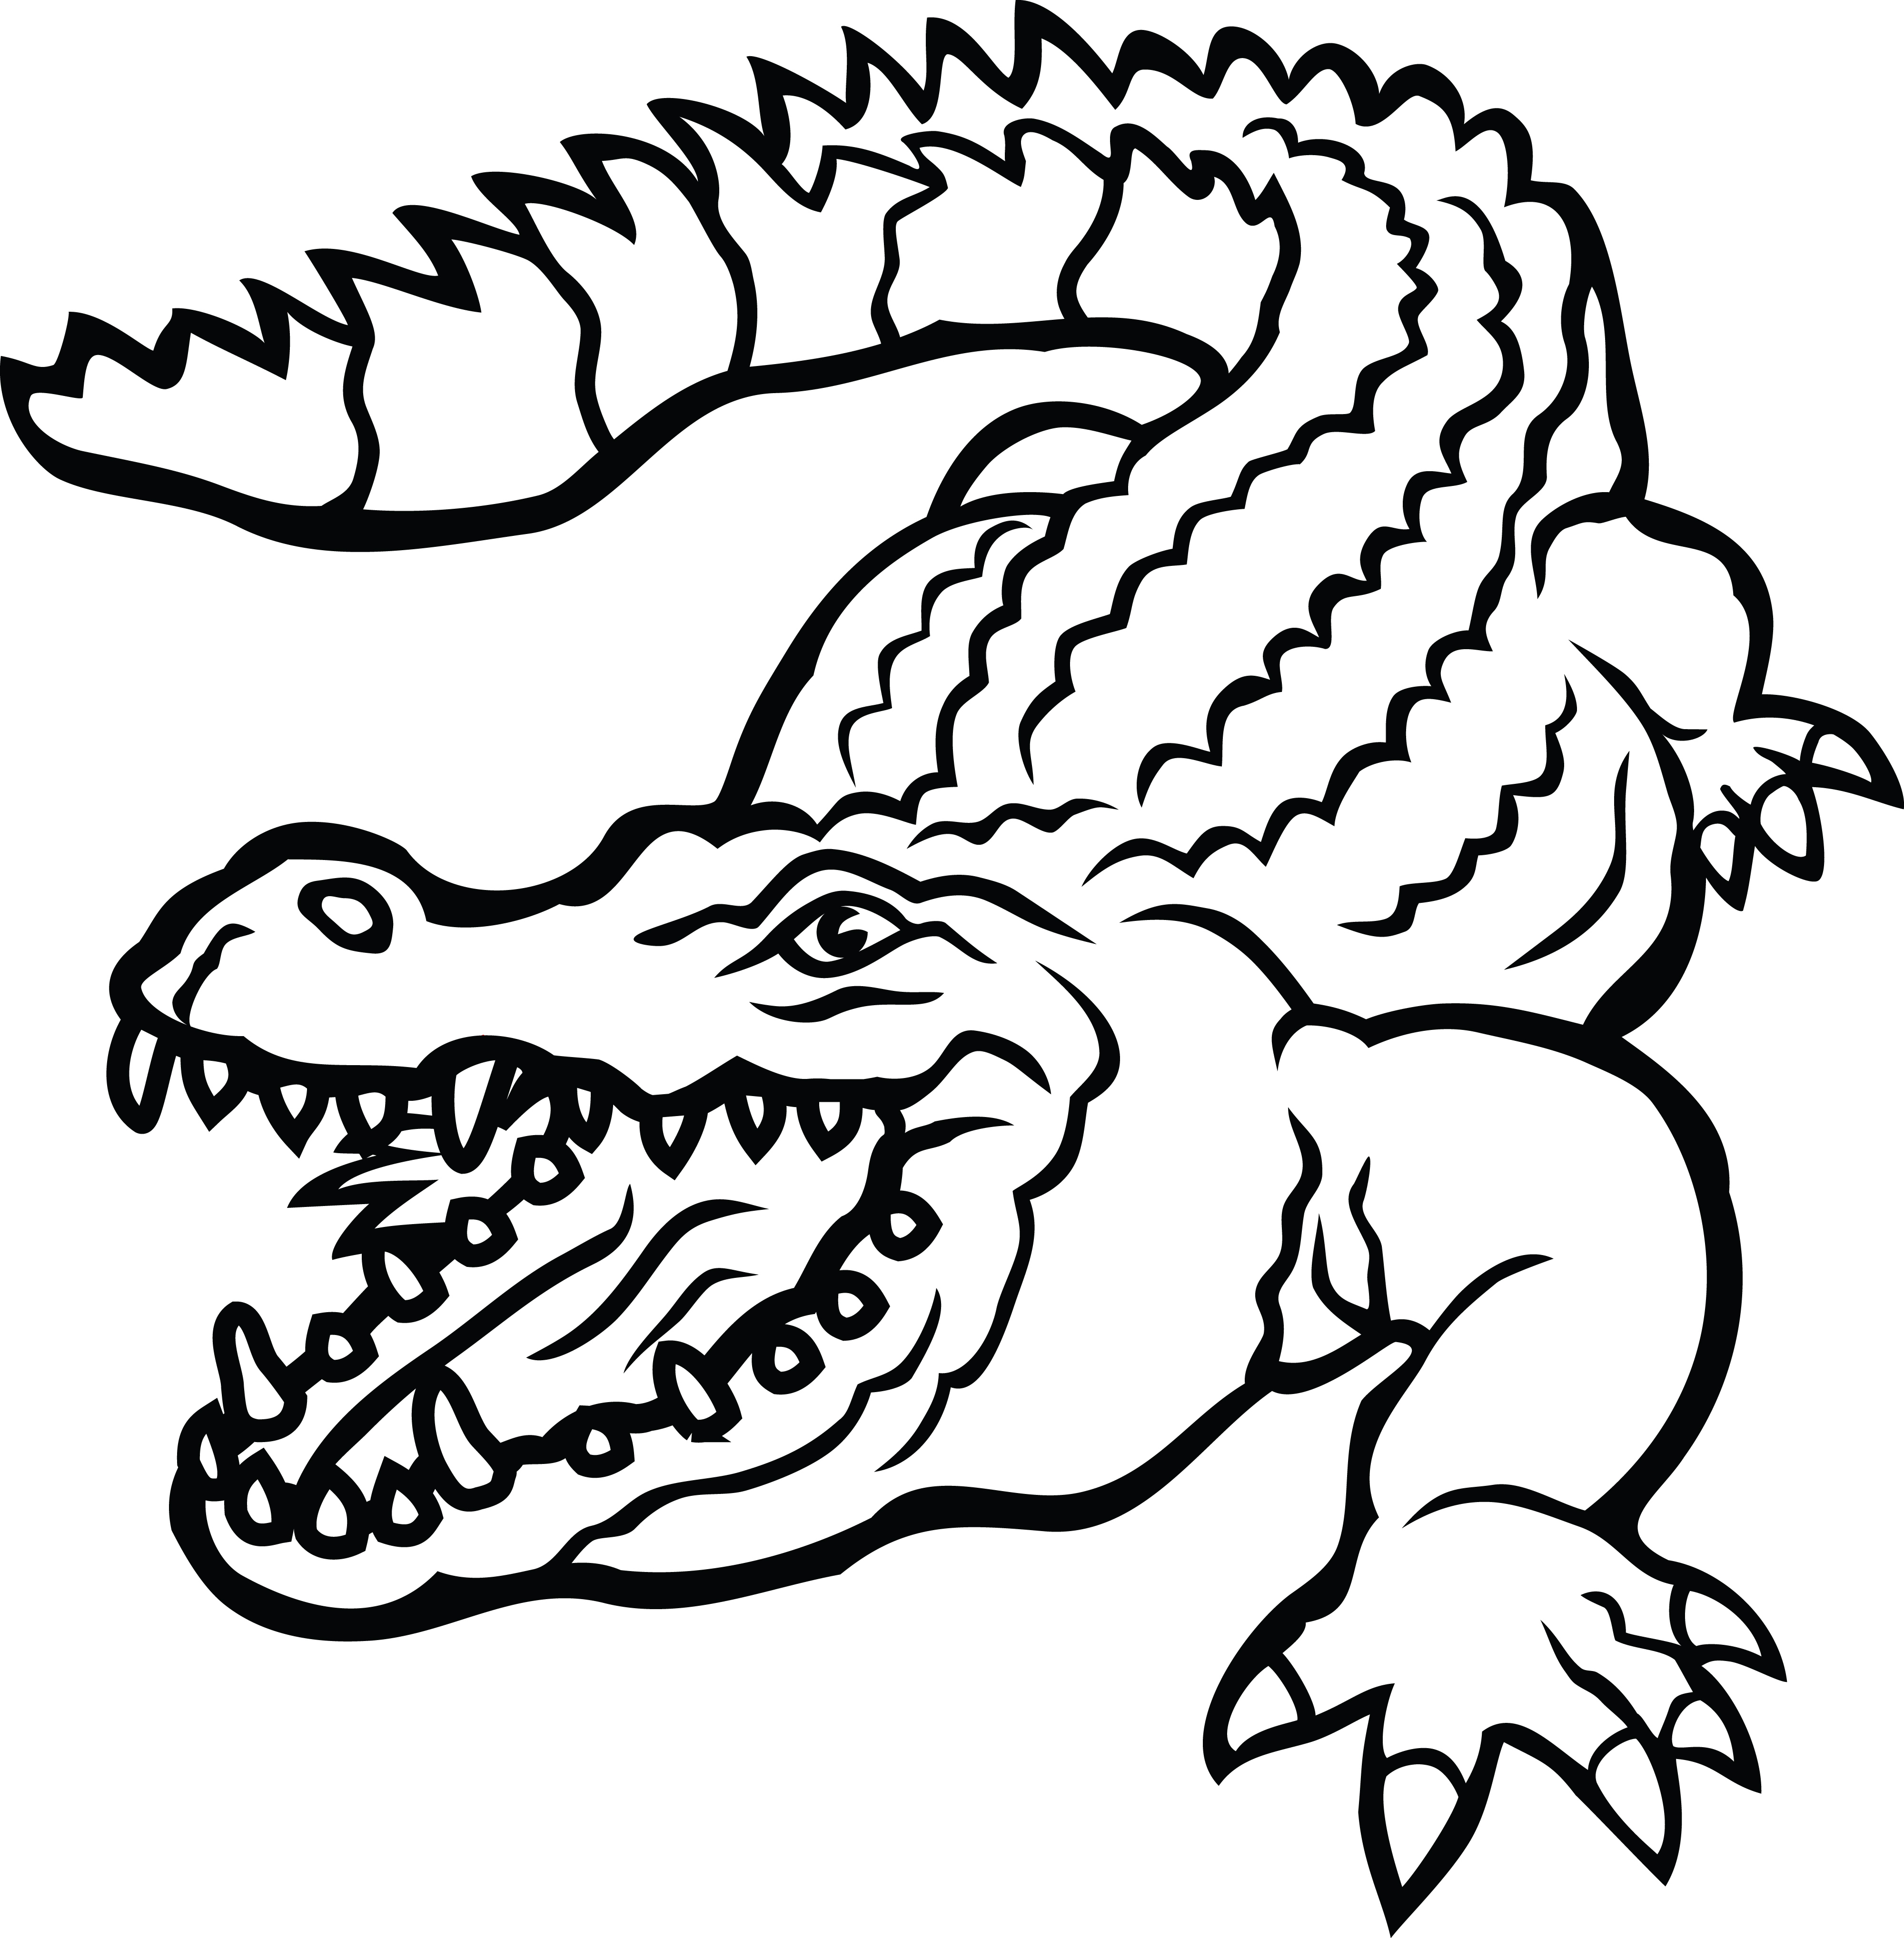 Crocodile Black And White | Free download best Crocodile Black And ... for Clipart Crocodile Black And White  58cpg